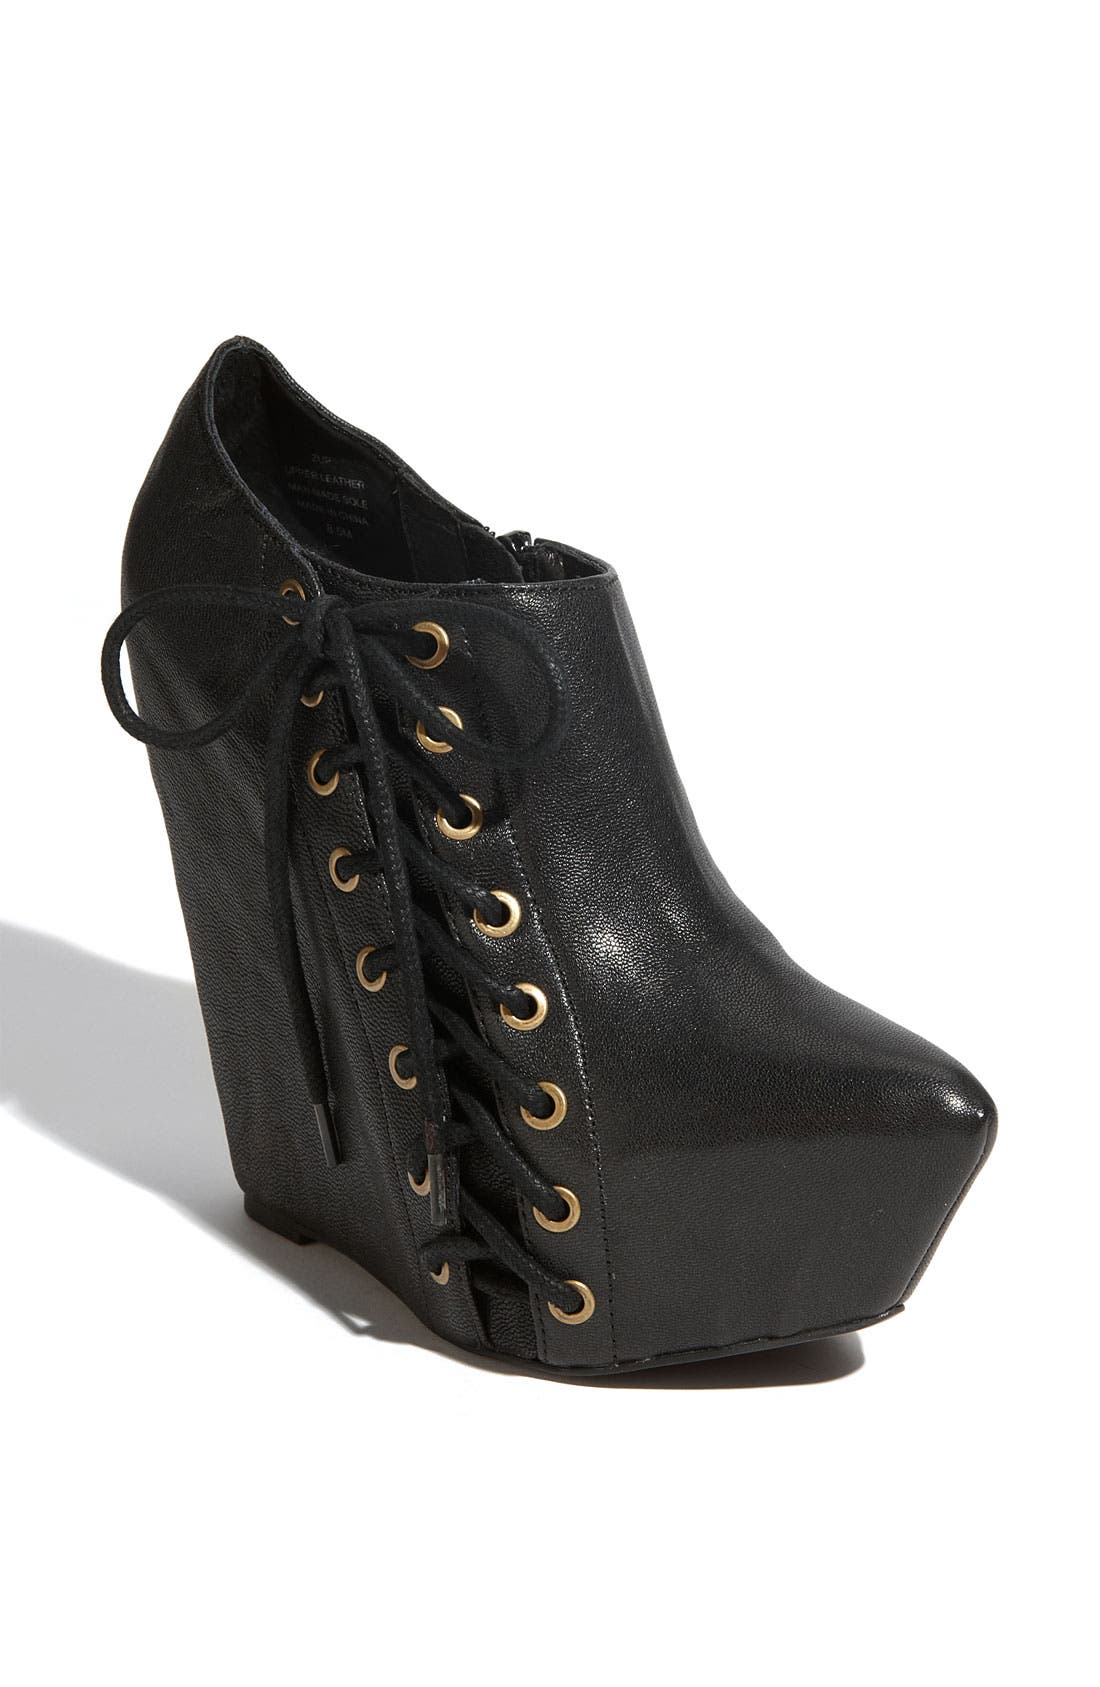 Alternate Image 1 Selected - Jeffrey Campbell 'Zup' Bootie